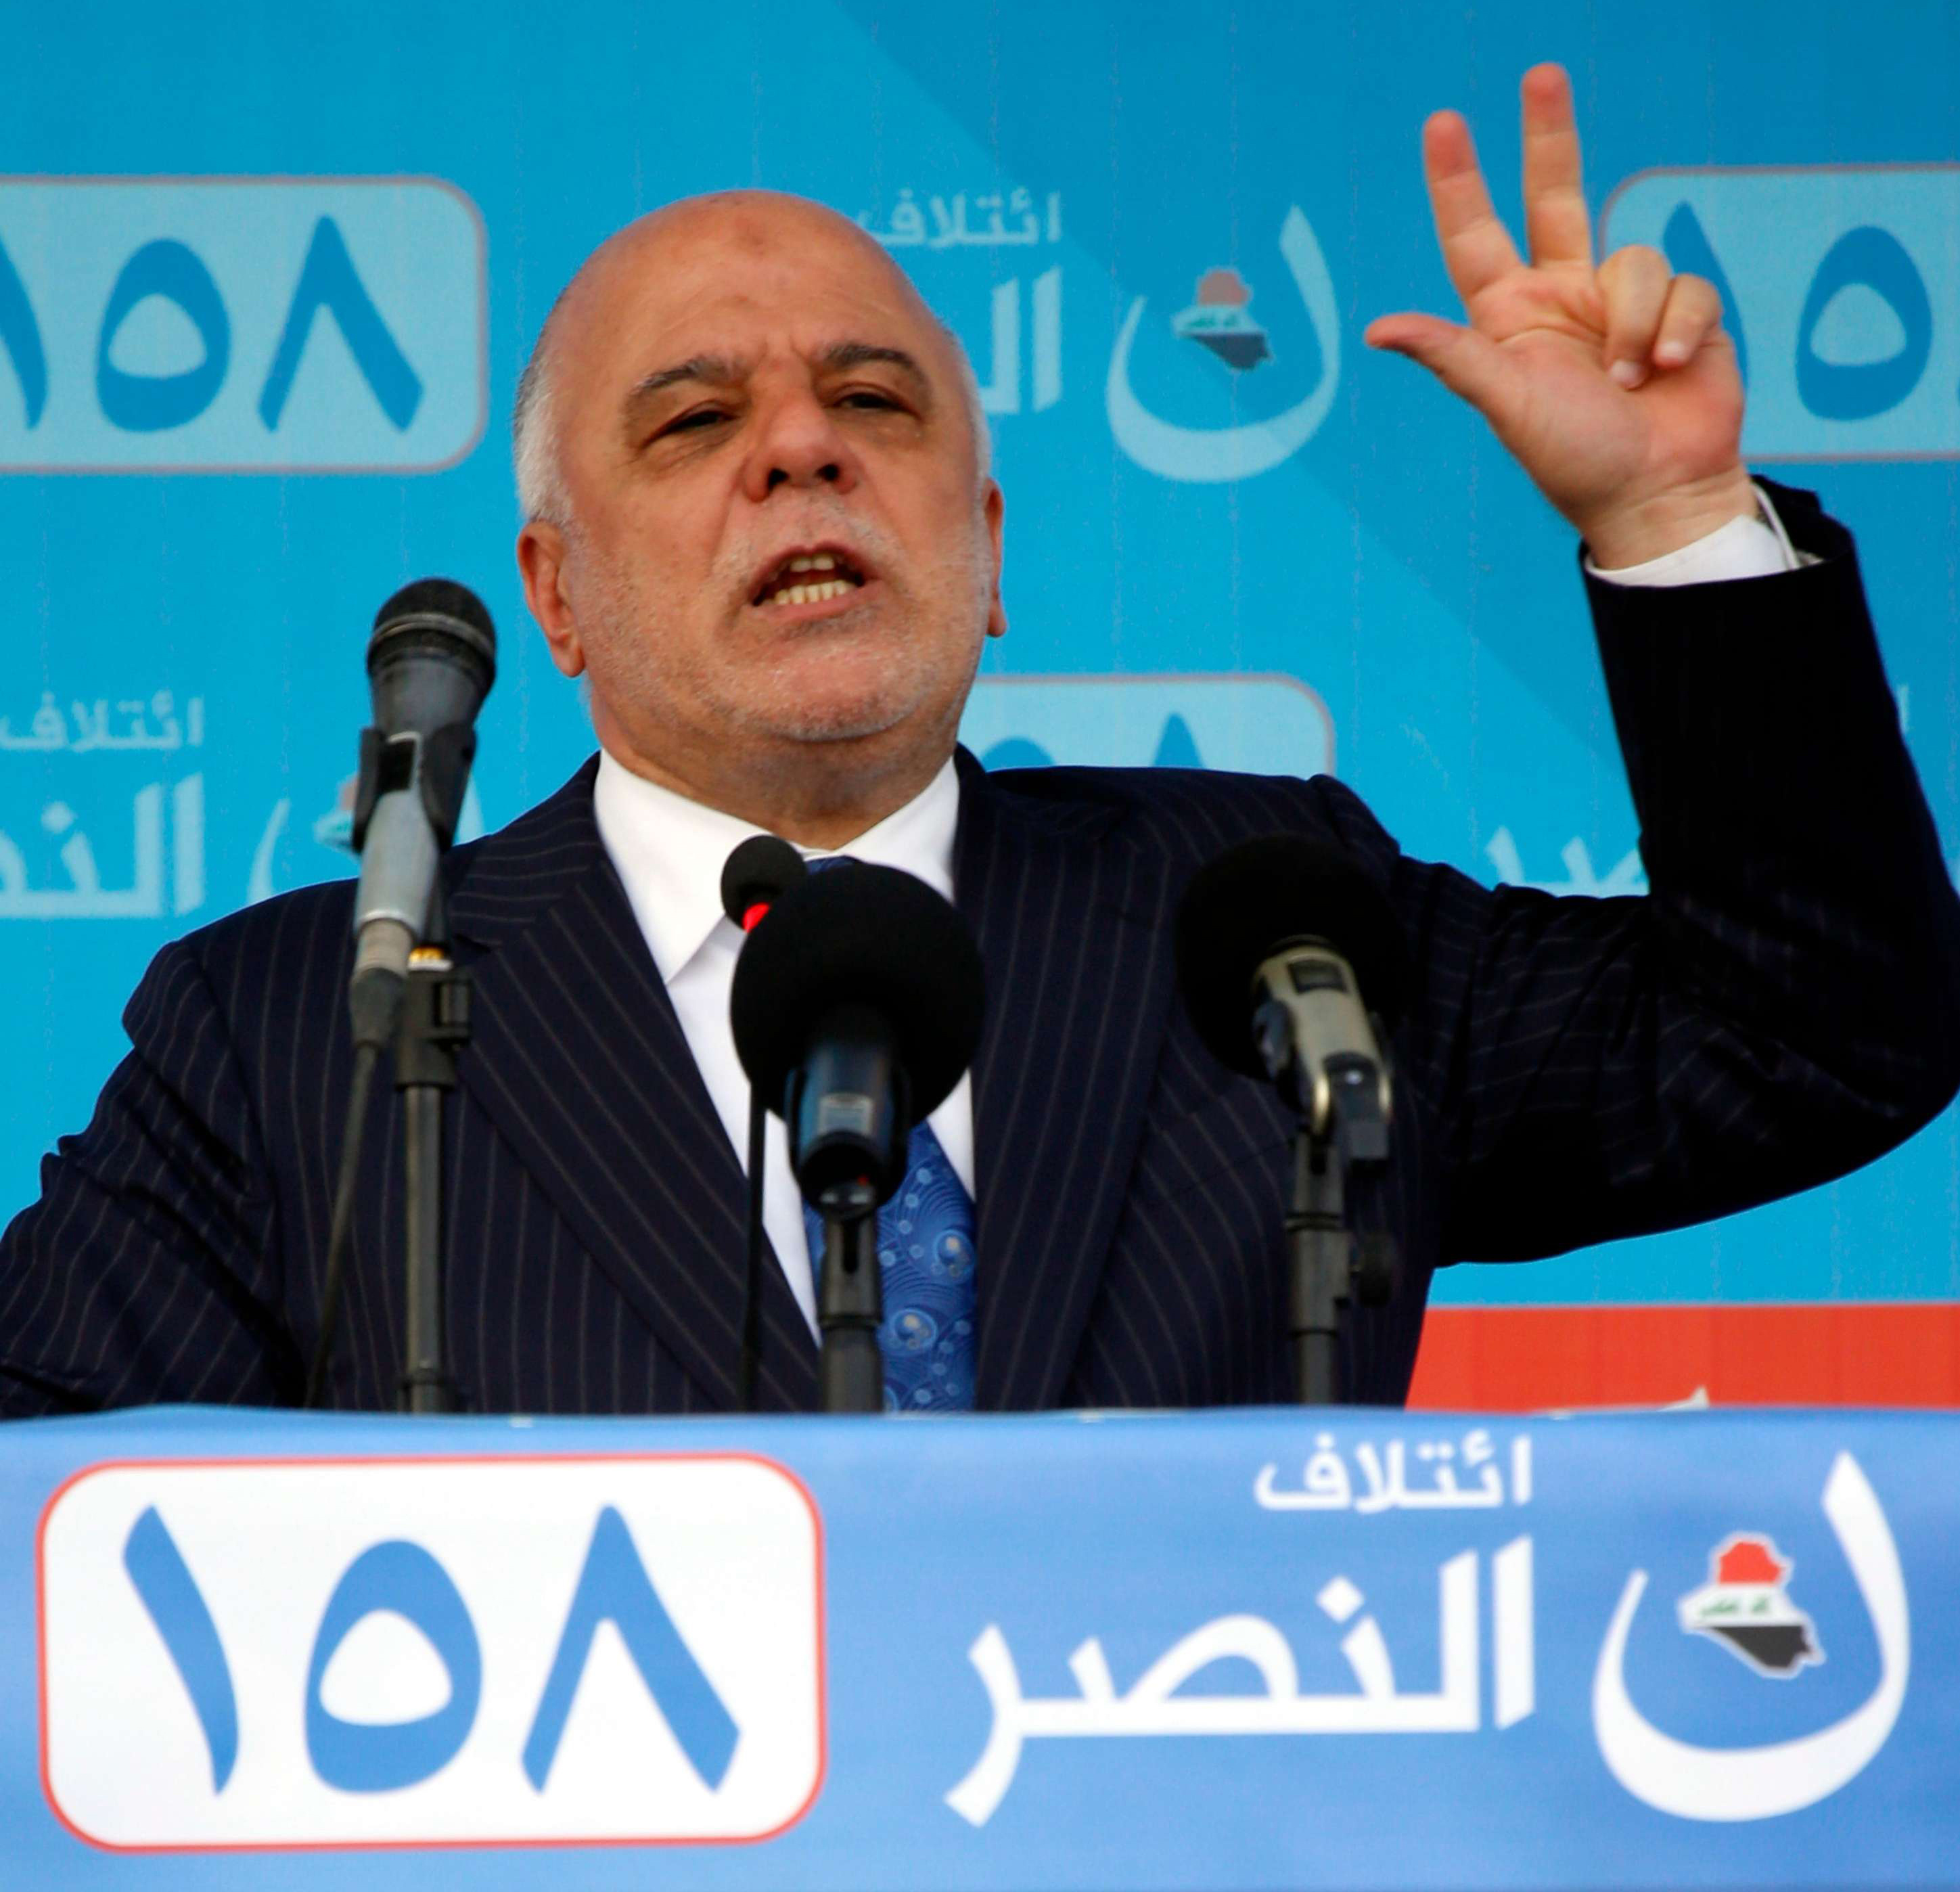 Iraqi Prime Minister Haider al-Abadi talks during a campaign rally in Najaf, on May 3. (AFP)